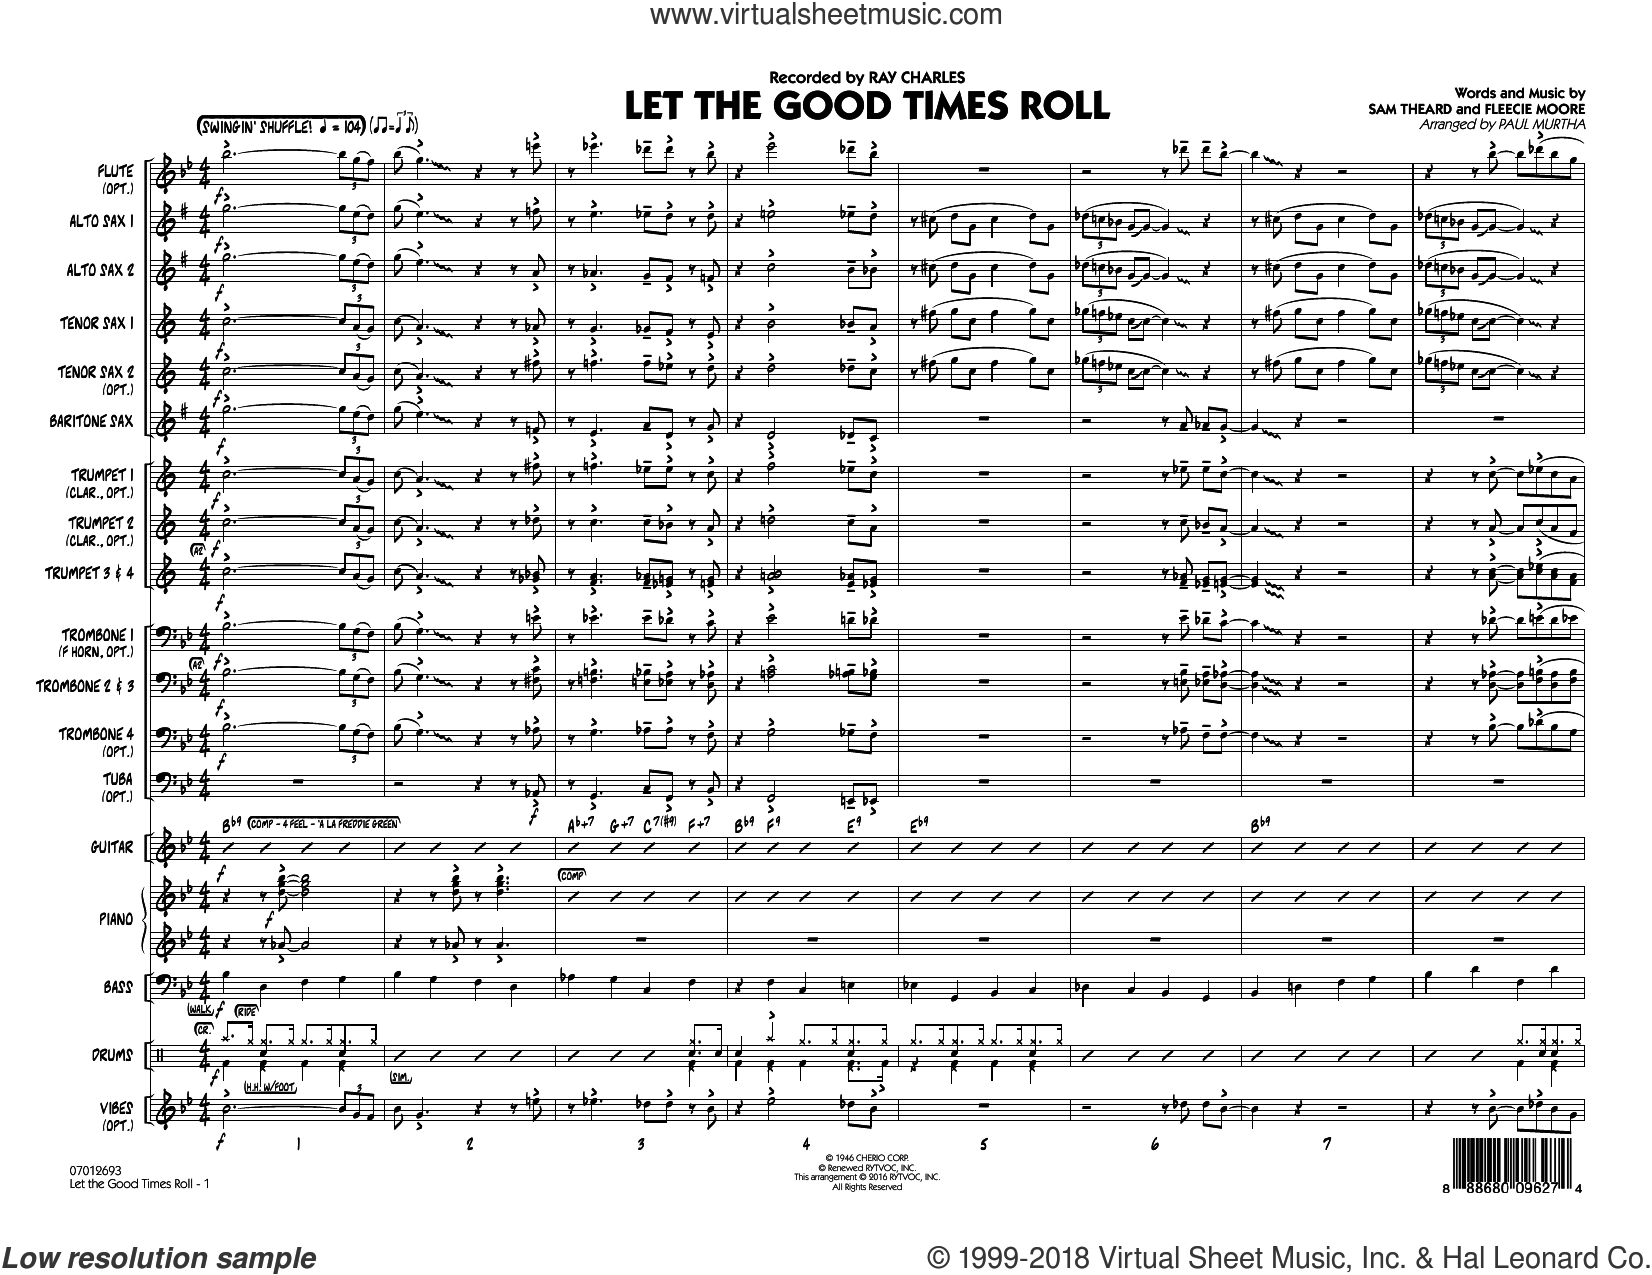 Let the Good Times Roll (COMPLETE) sheet music for jazz band by Paul Murtha, B.B. King, Fleecie Moore, Ray Charles, Sam Theard and Shirley & Lee, intermediate skill level